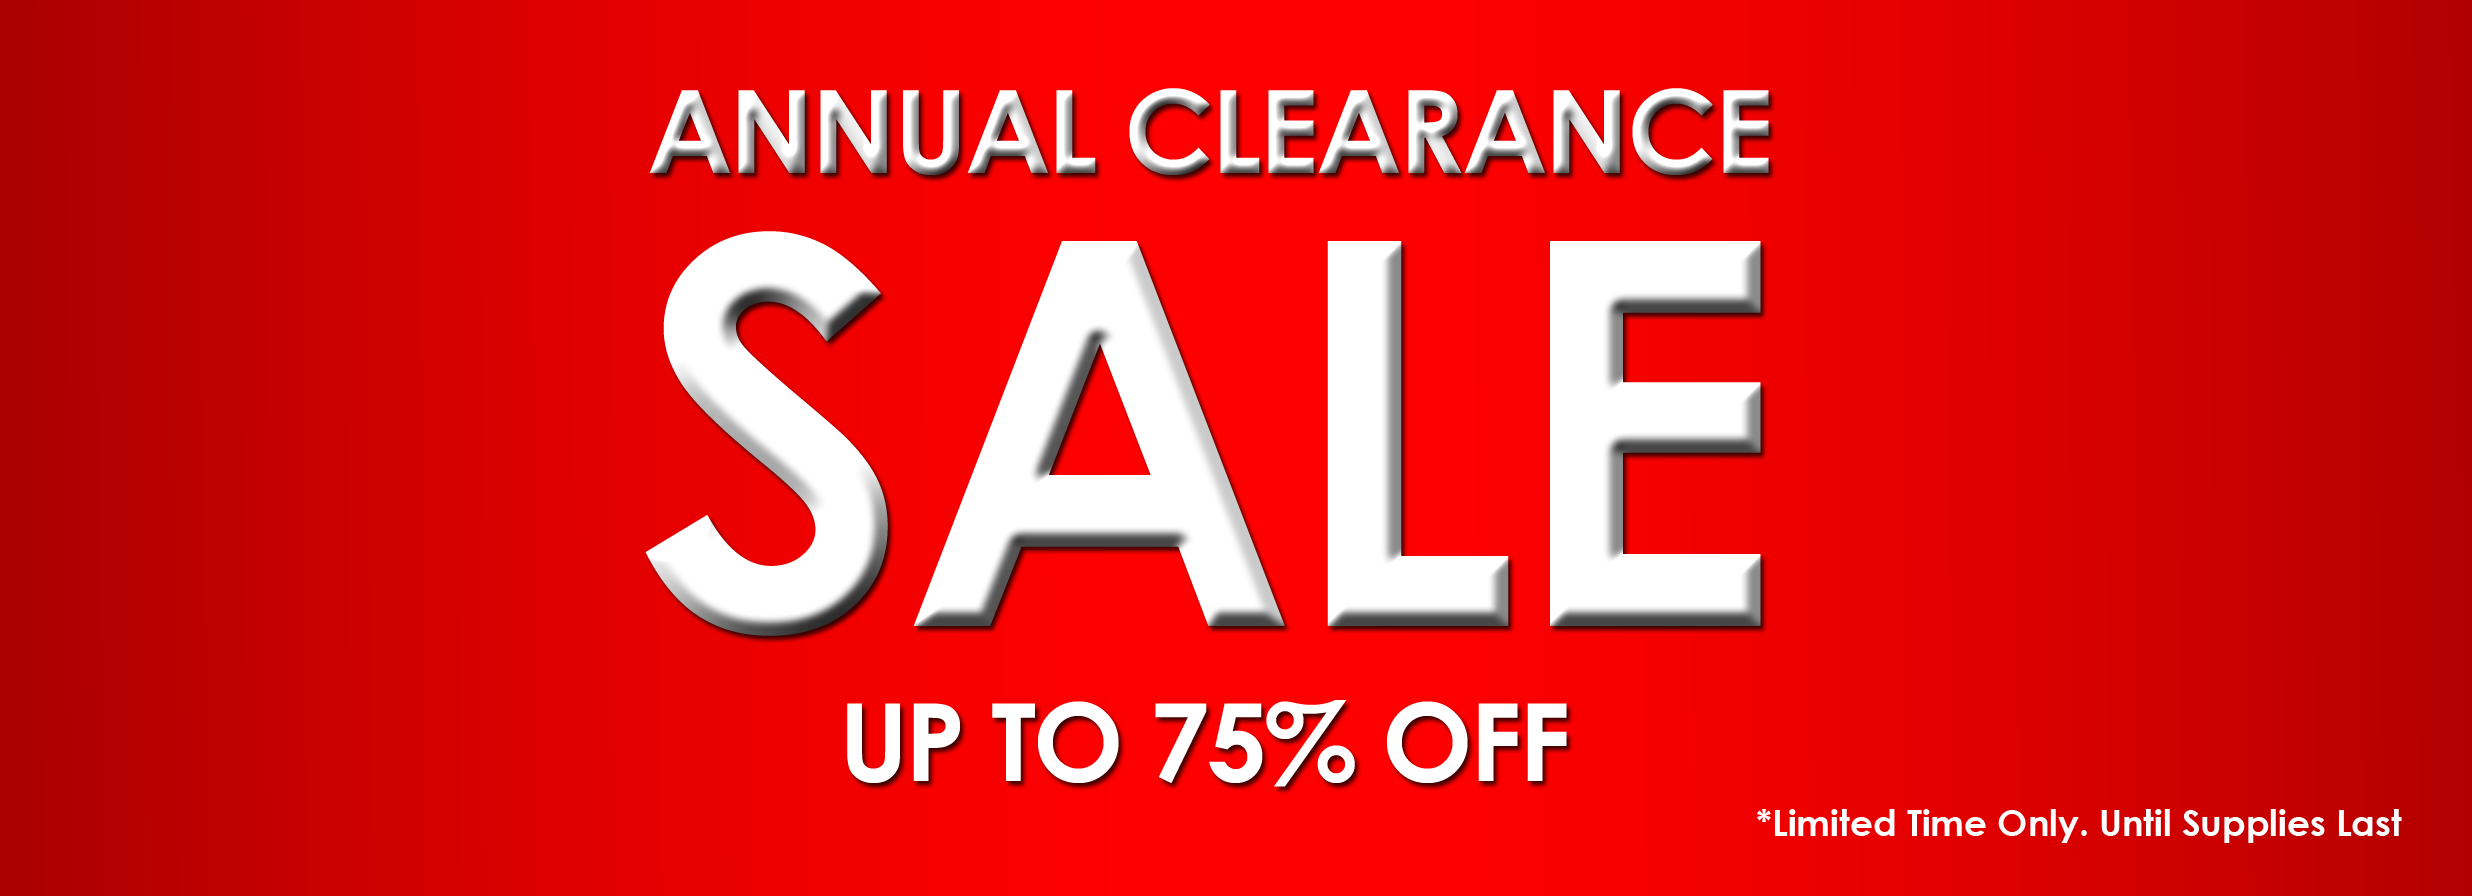 wwclearancesale2014.png